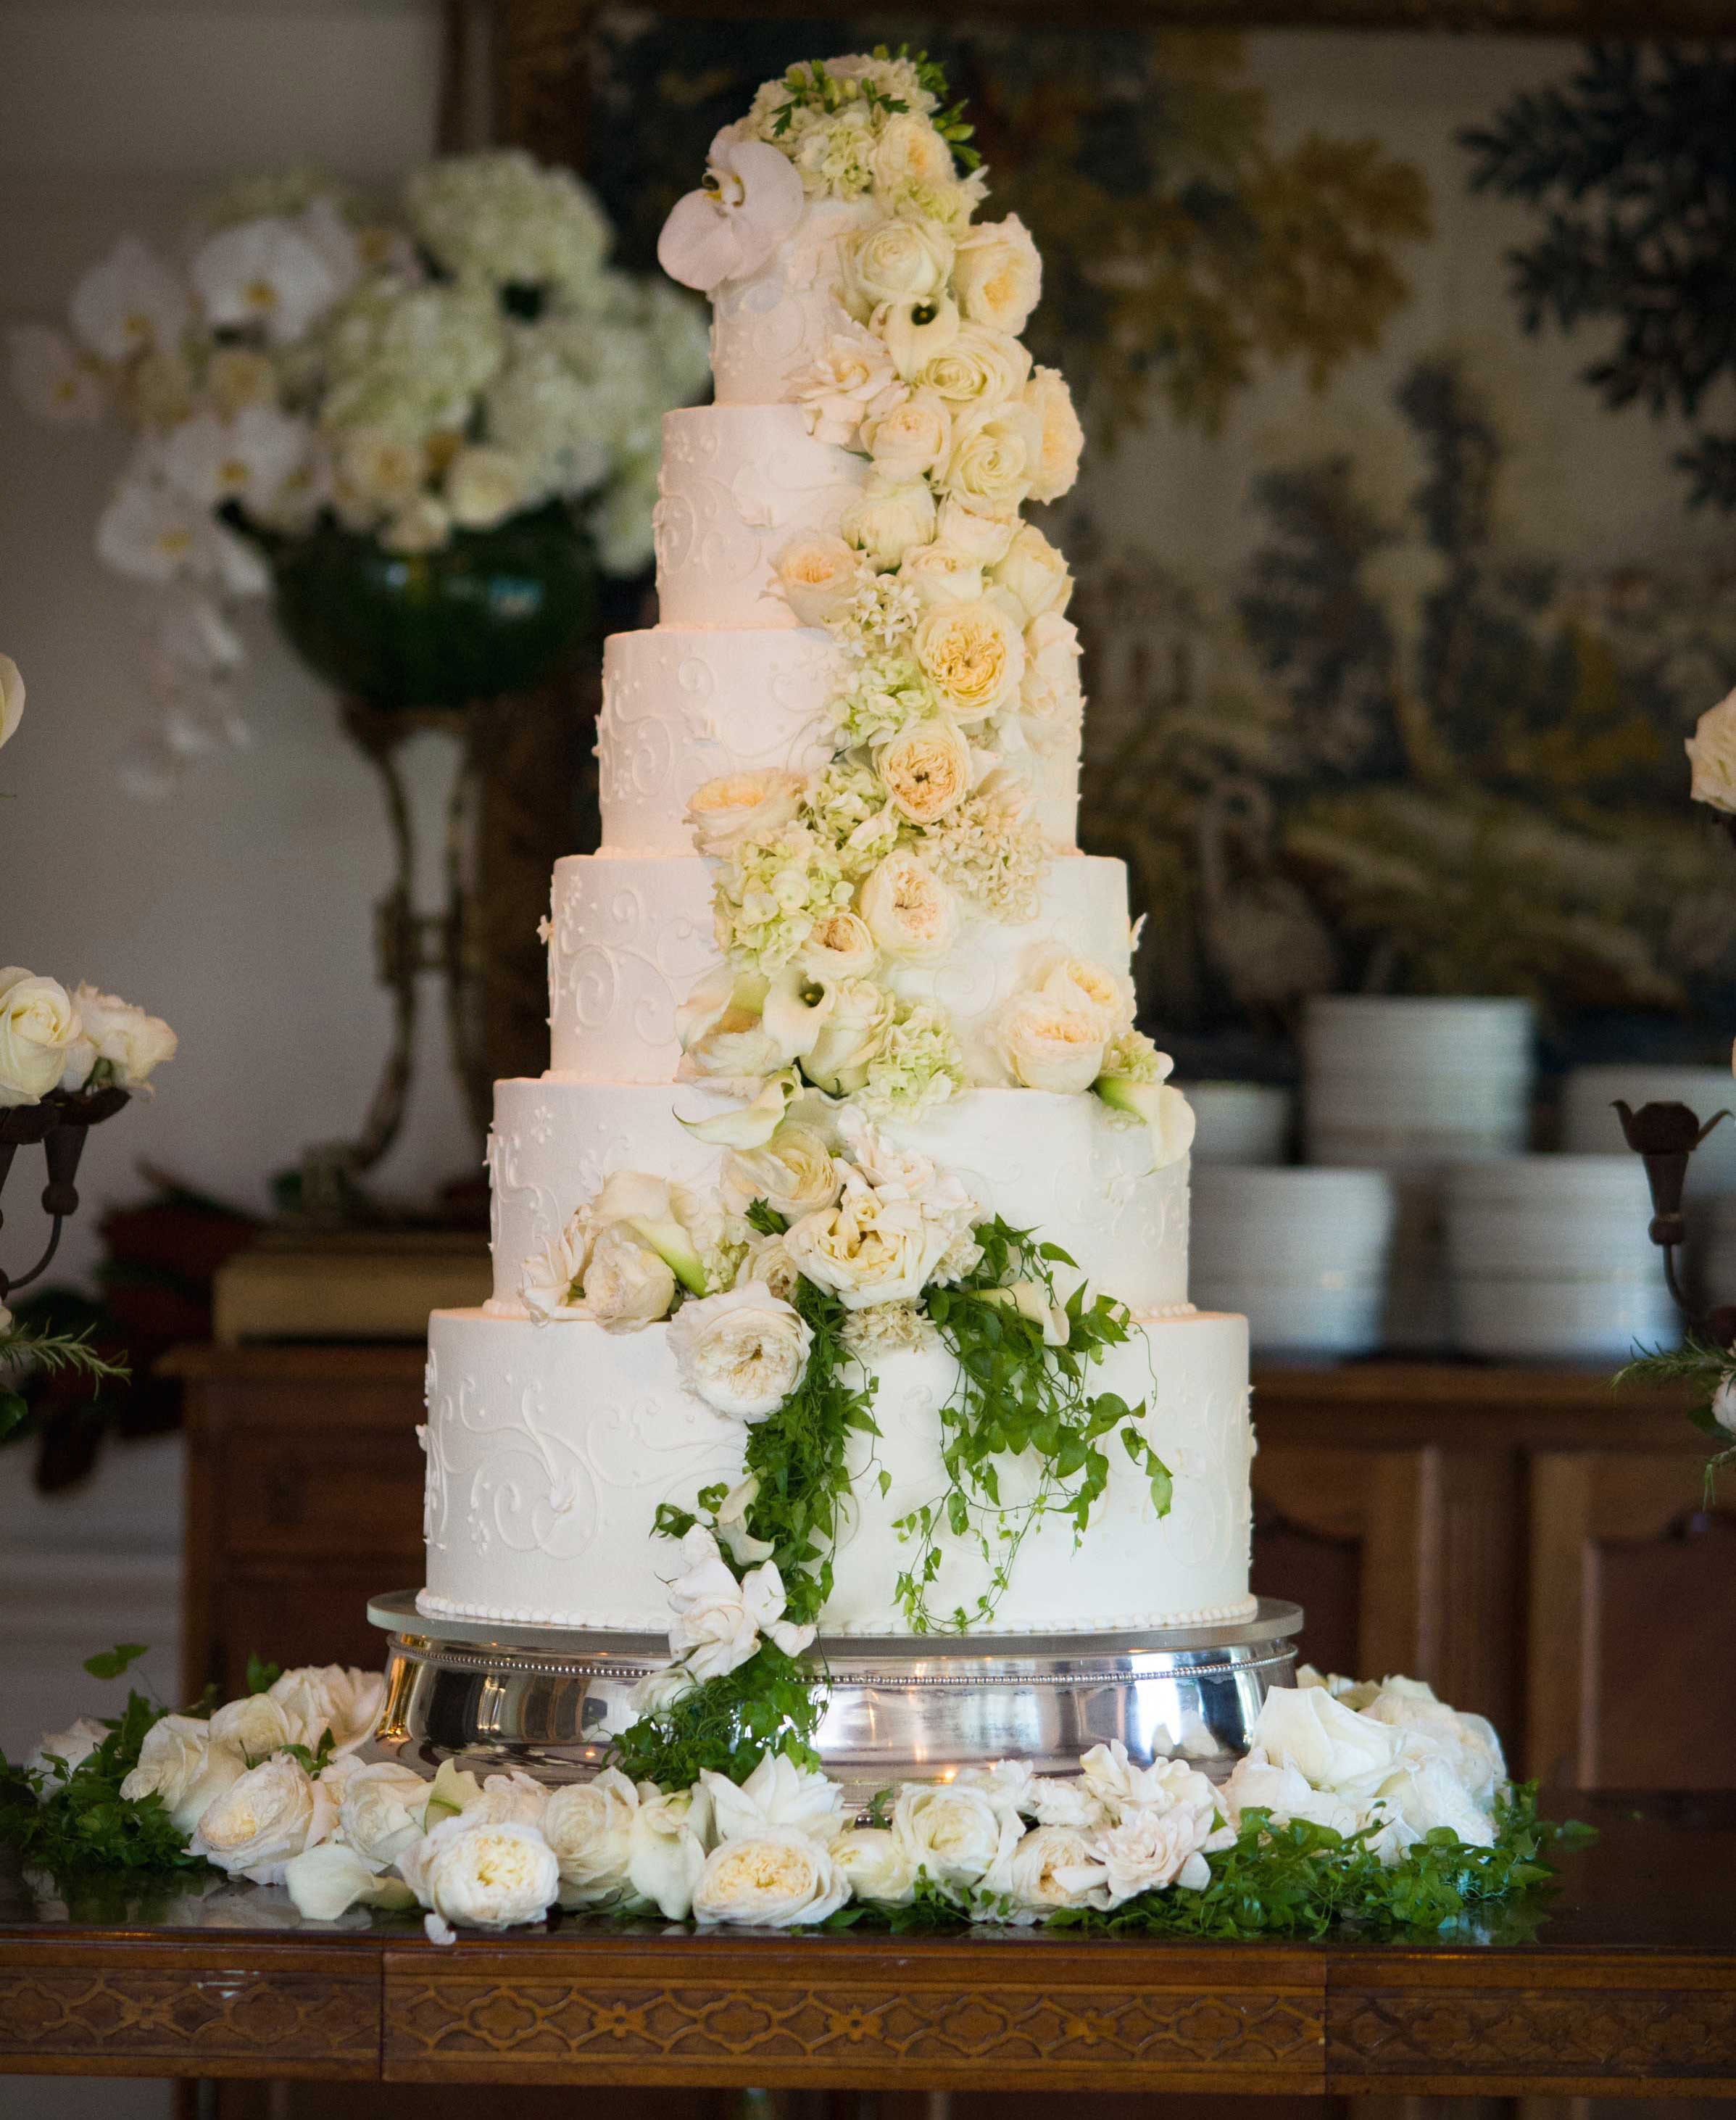 Tall white wedding cake with fresh white flowers